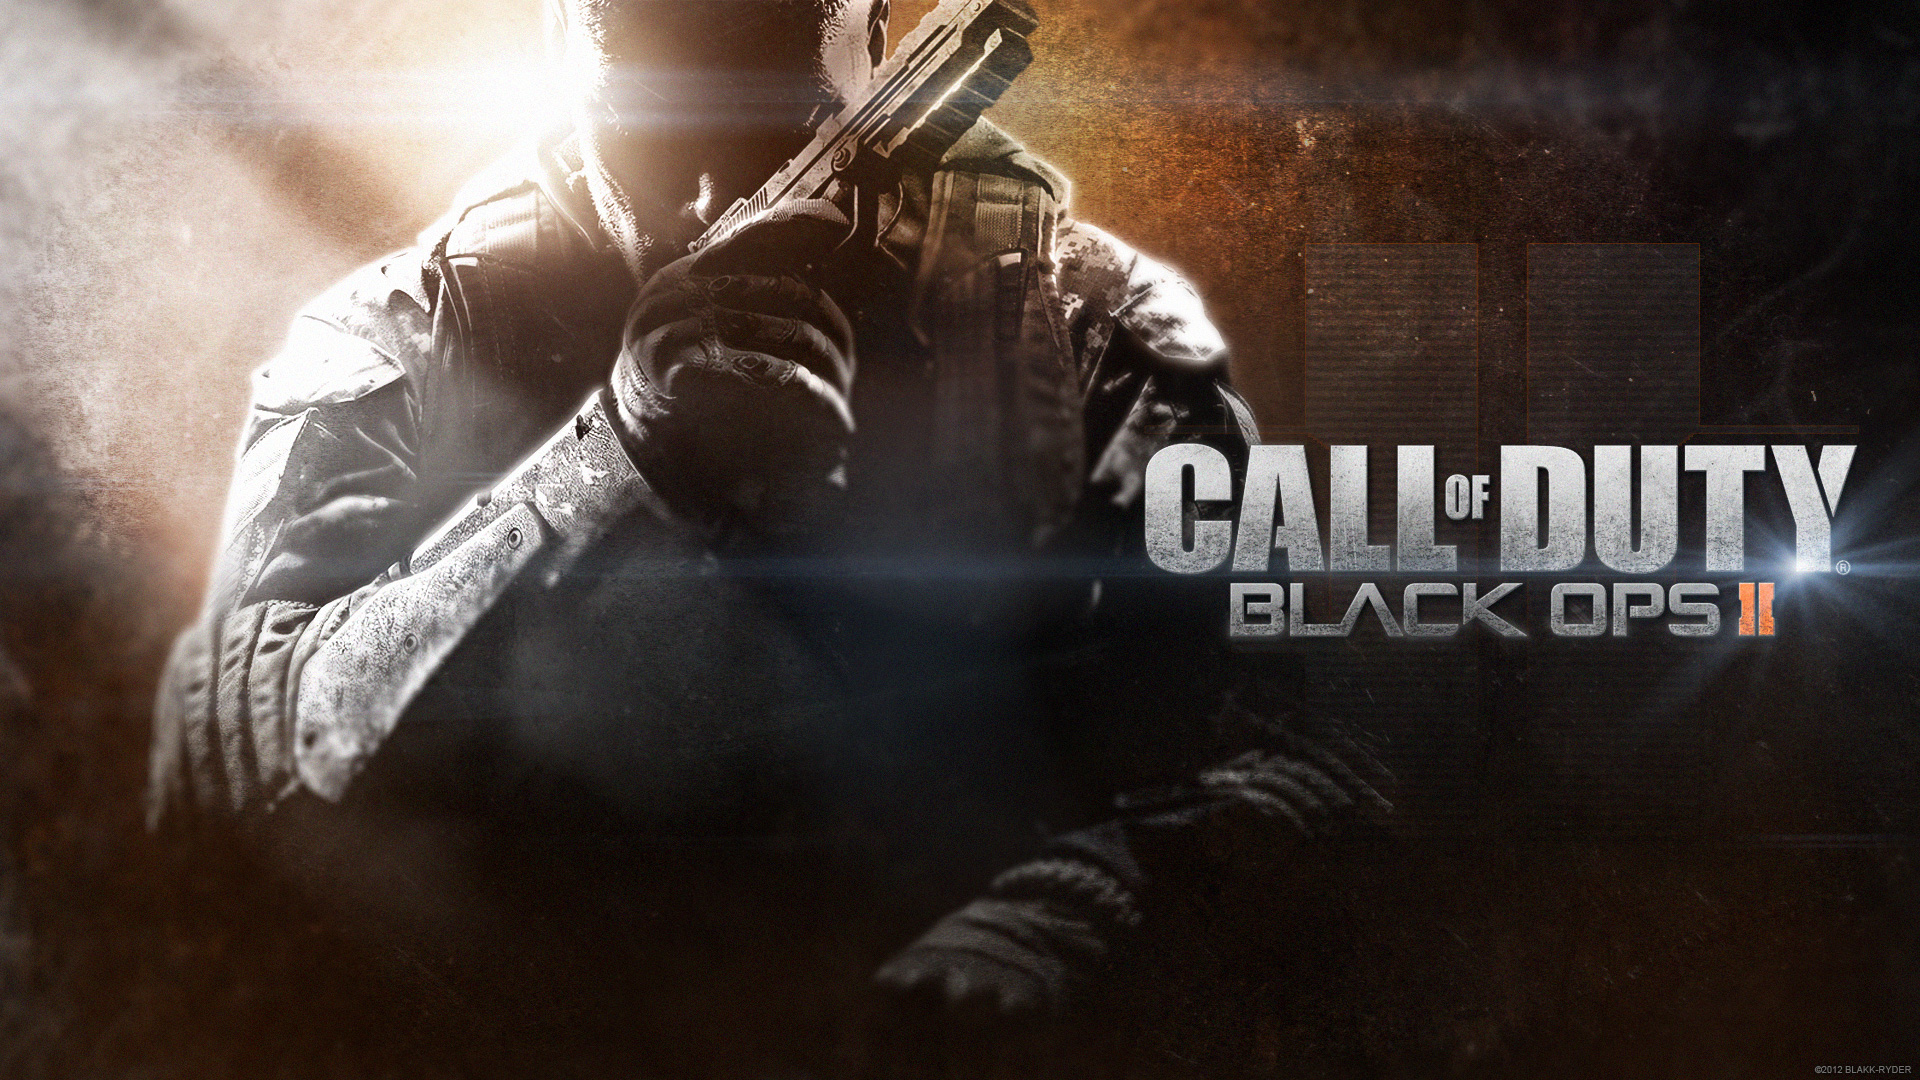 call of duty black ops 2 full hd papel de parede and. Black Bedroom Furniture Sets. Home Design Ideas